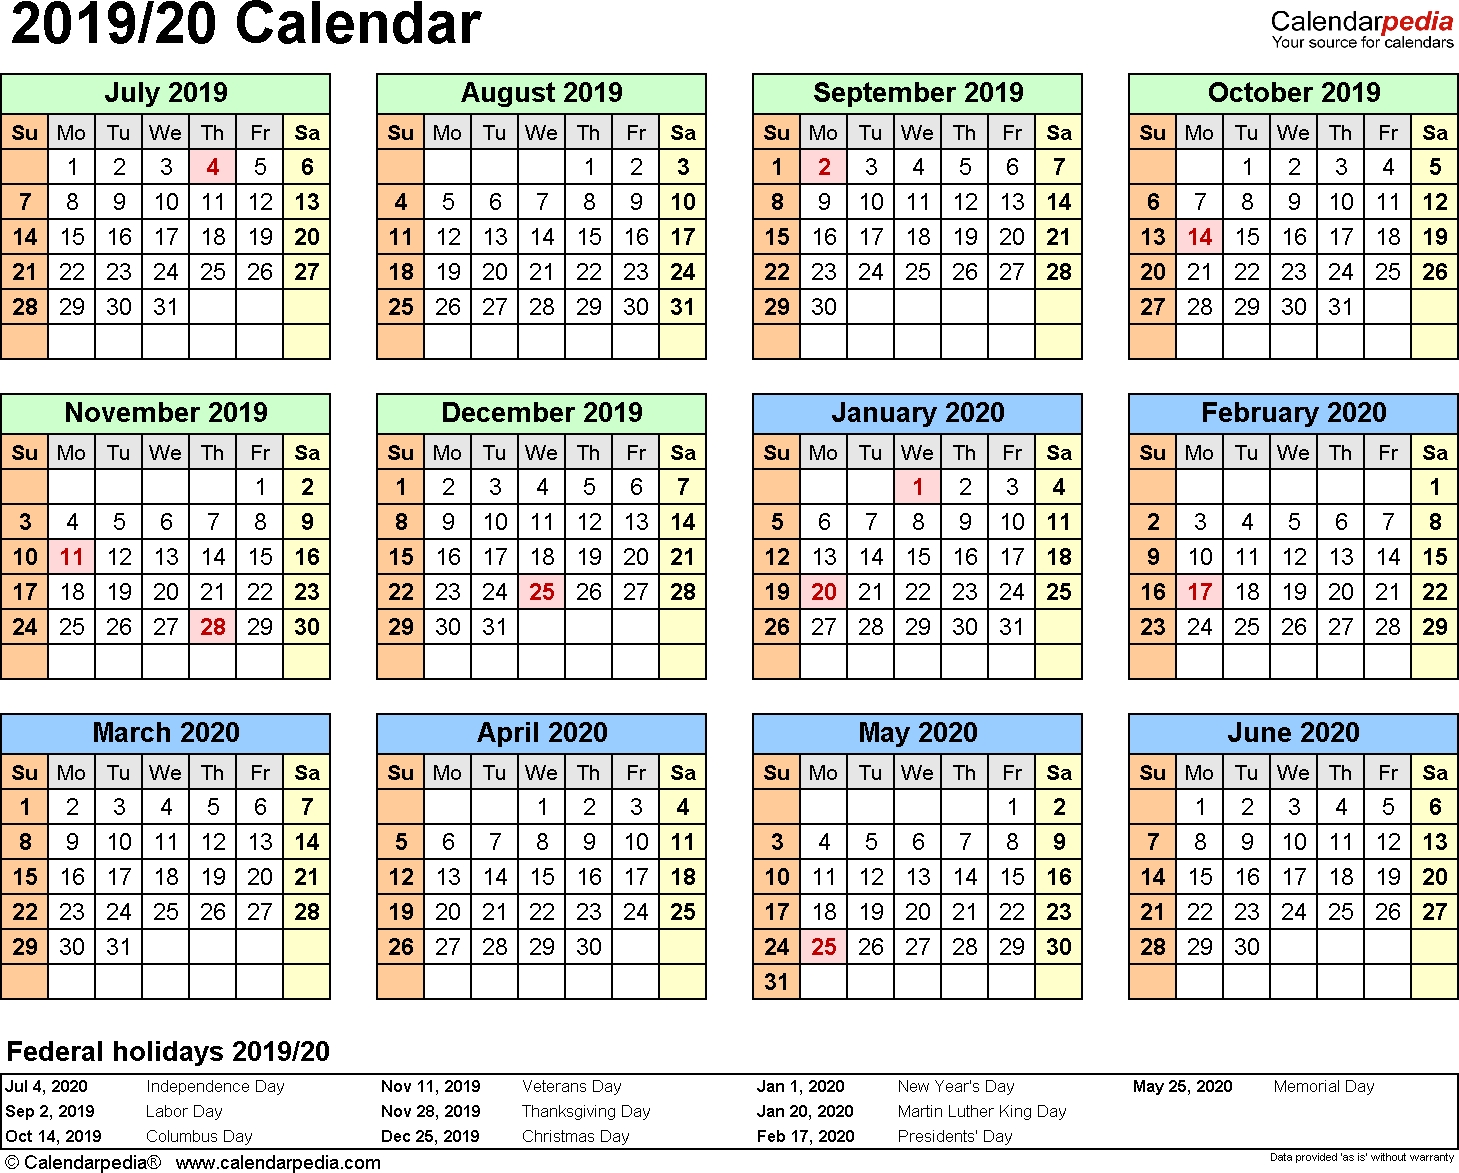 Split Year Calendars 2019/2020 (July To June) - Excel Templates Calendarpedia 2020 Printable South Africa